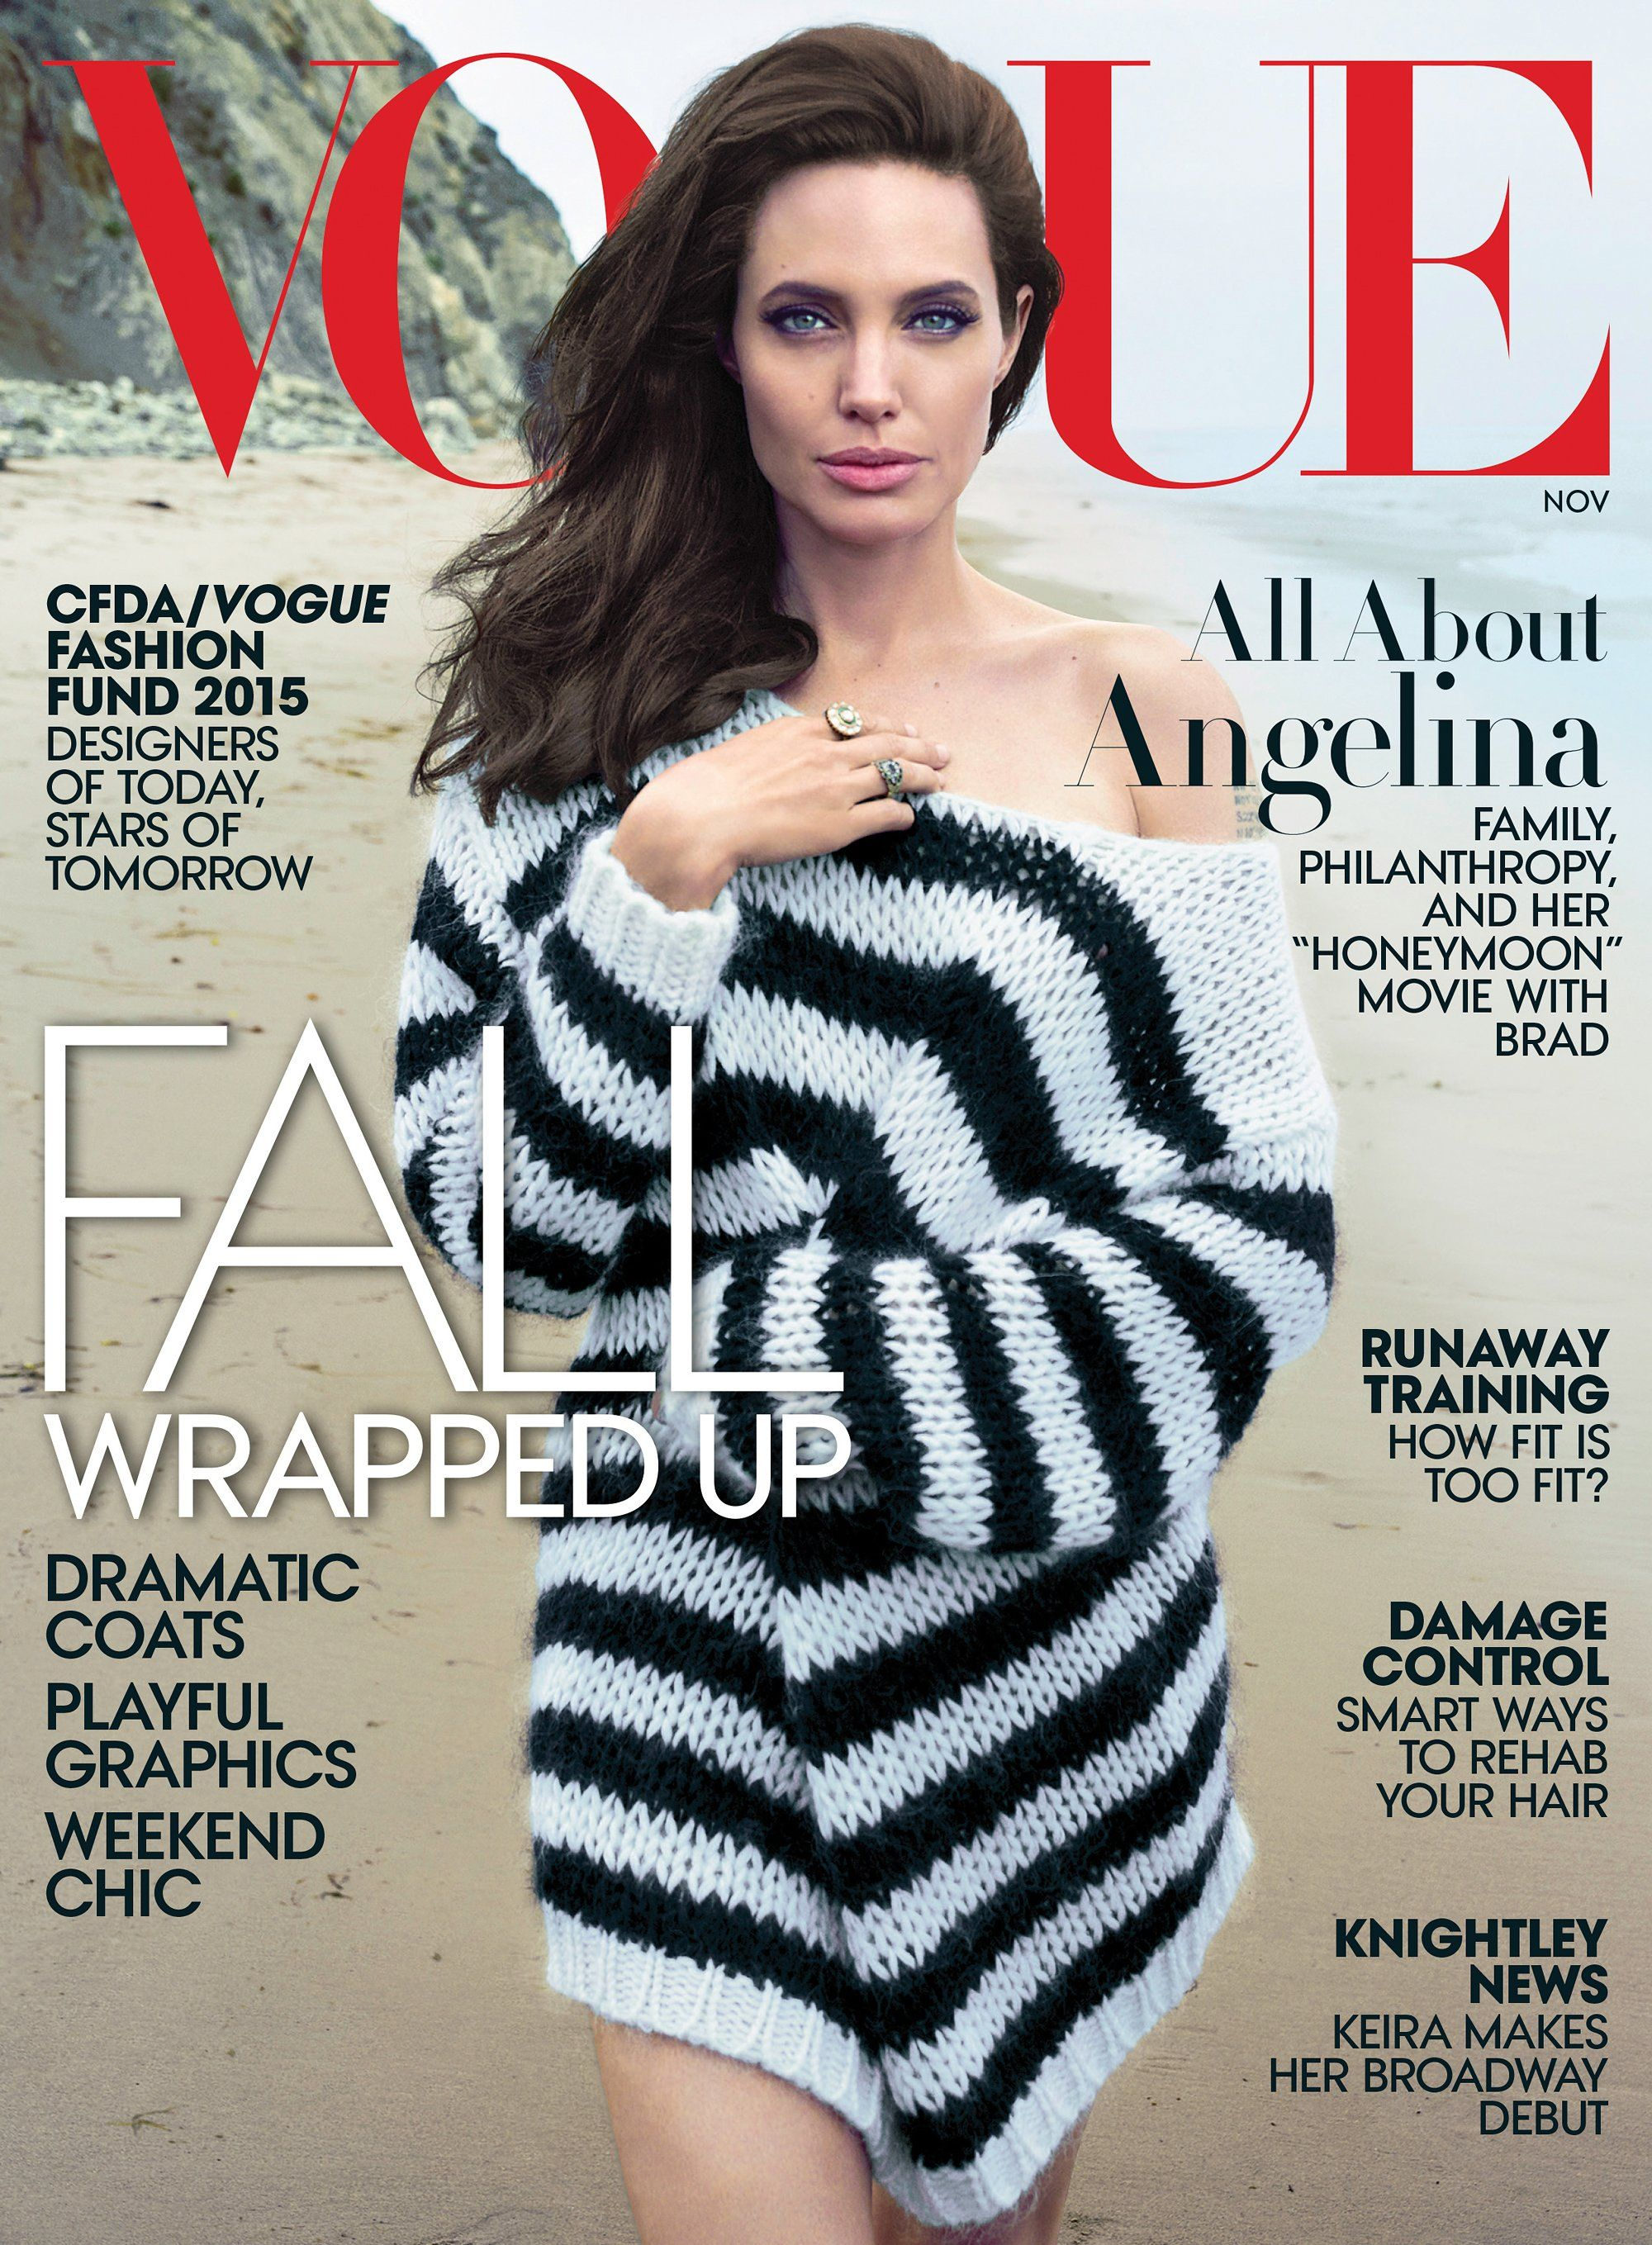 Angelina Jolie Pitt On Family Philanthropy And Her Honeymoon Clothing Georgia Mini Dress Strong Like The Sea Wears A Saint Laurent By Hedi Slimane Sweater Angelinajolie Vogue Cover